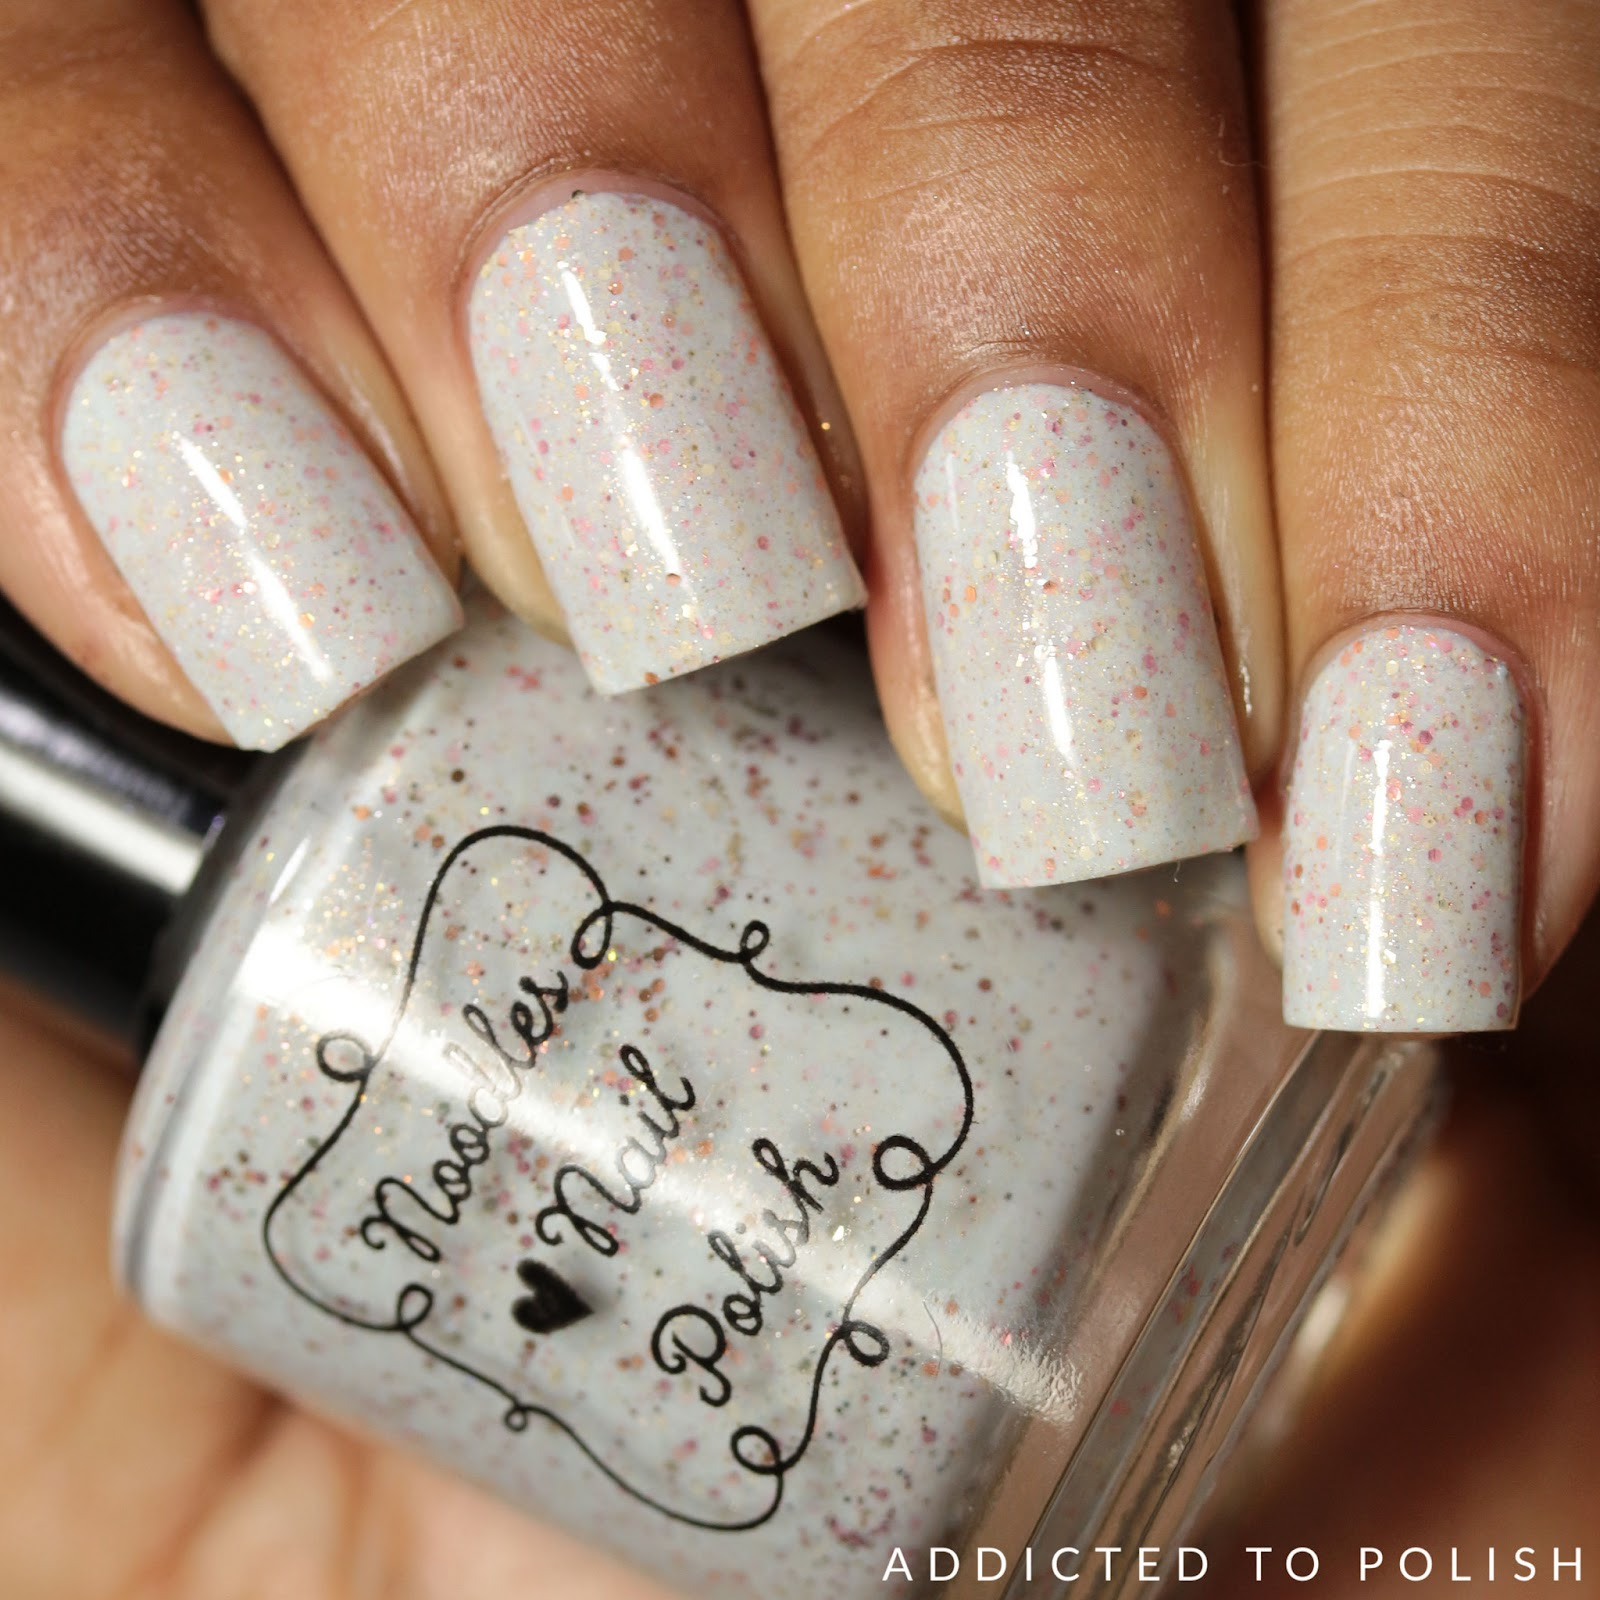 Powder Nail Polish Near Me: Addicted To Polish: Polish Con